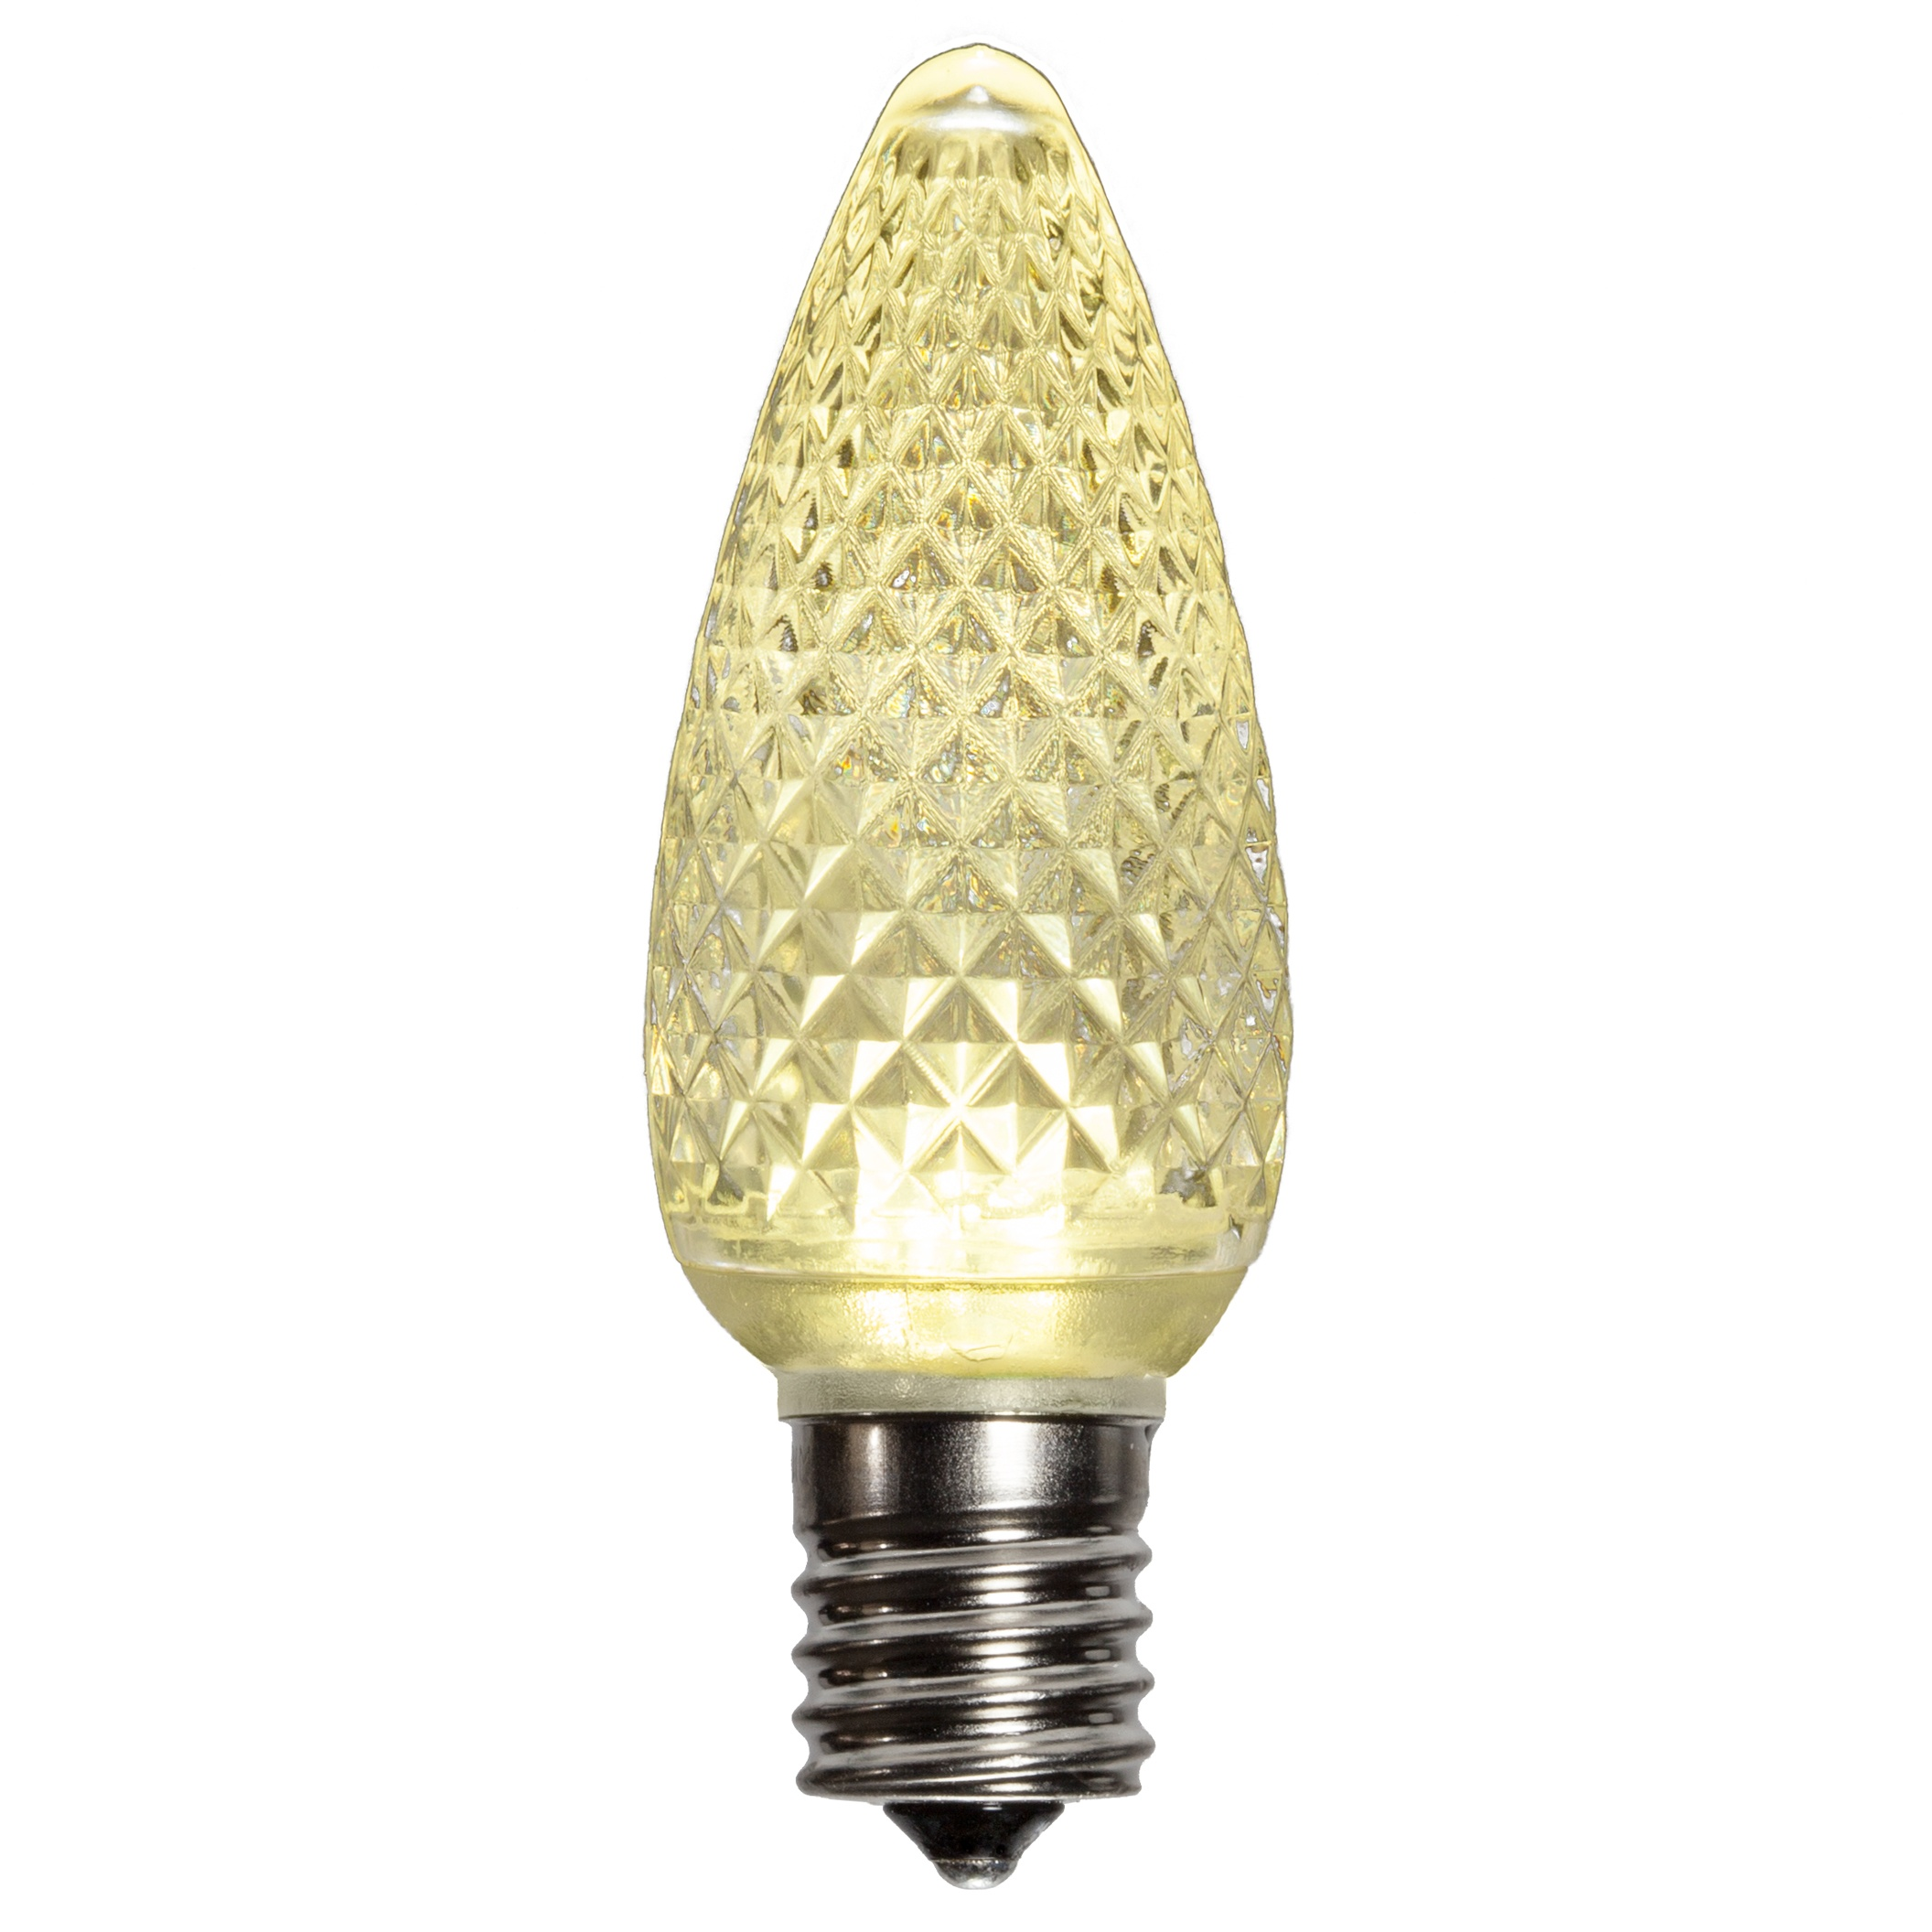 C9 Warm White Led Christmas Light Bulbs